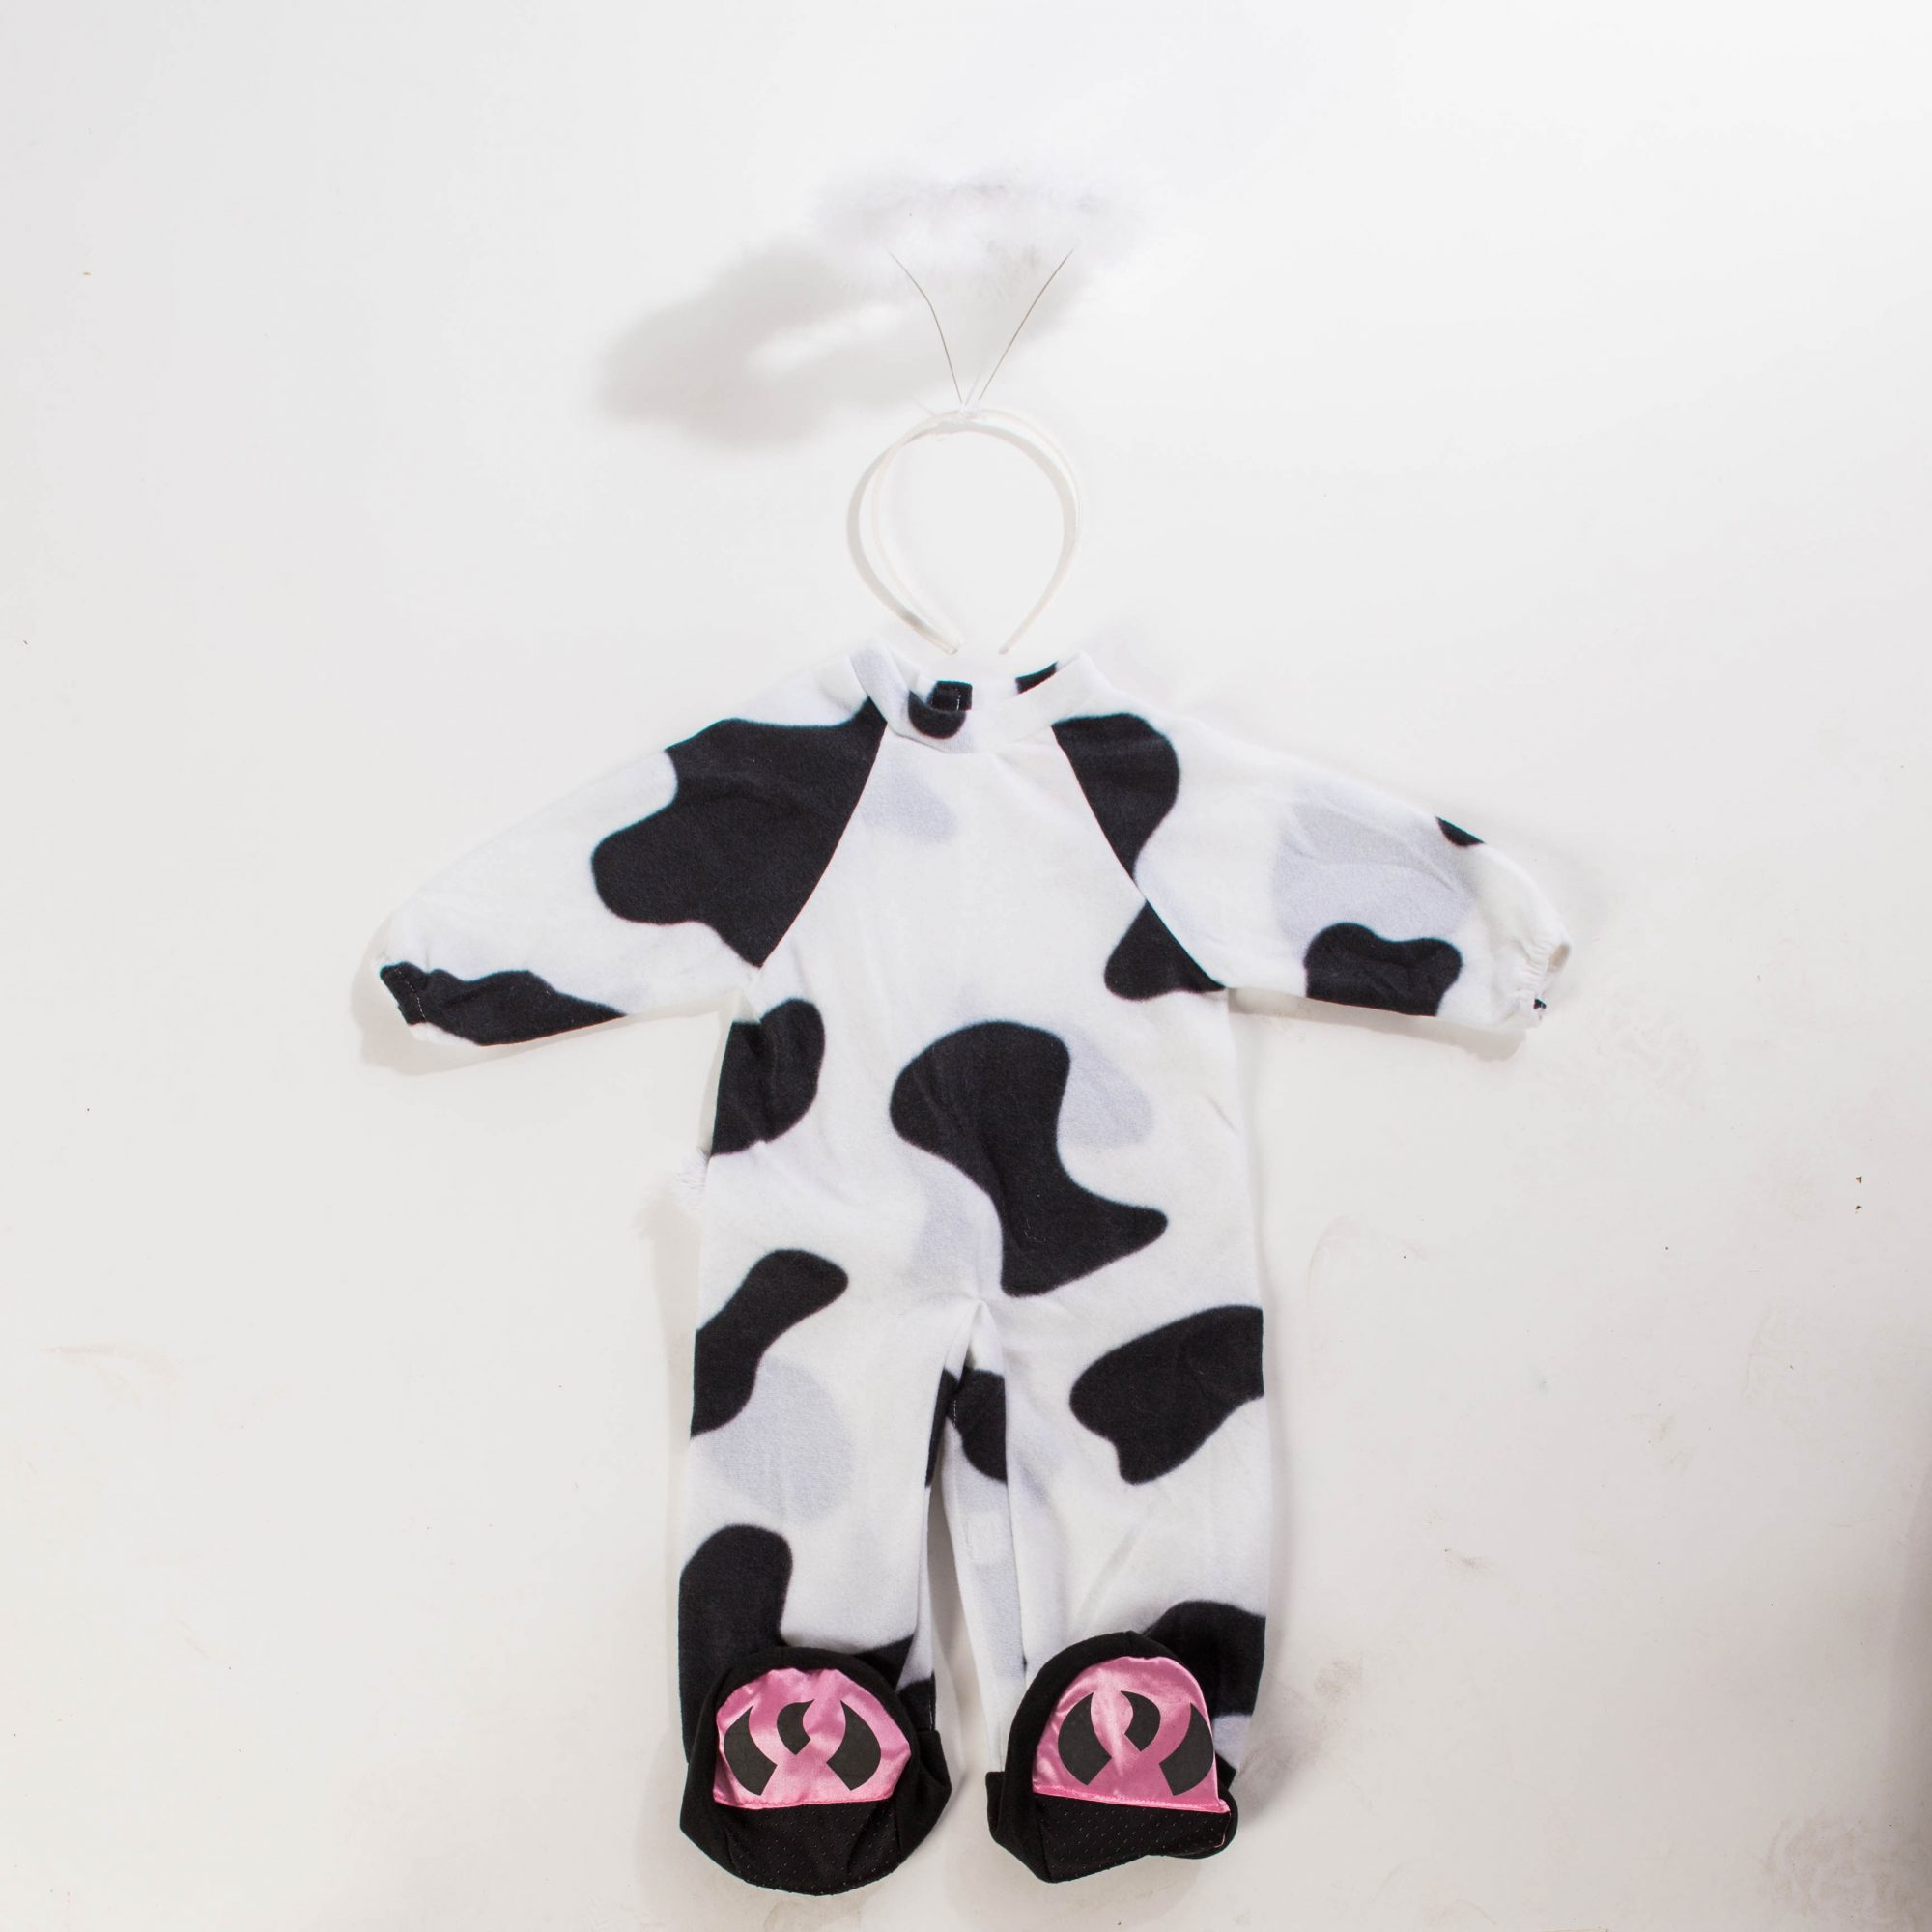 How To Make Holy Cow Costume